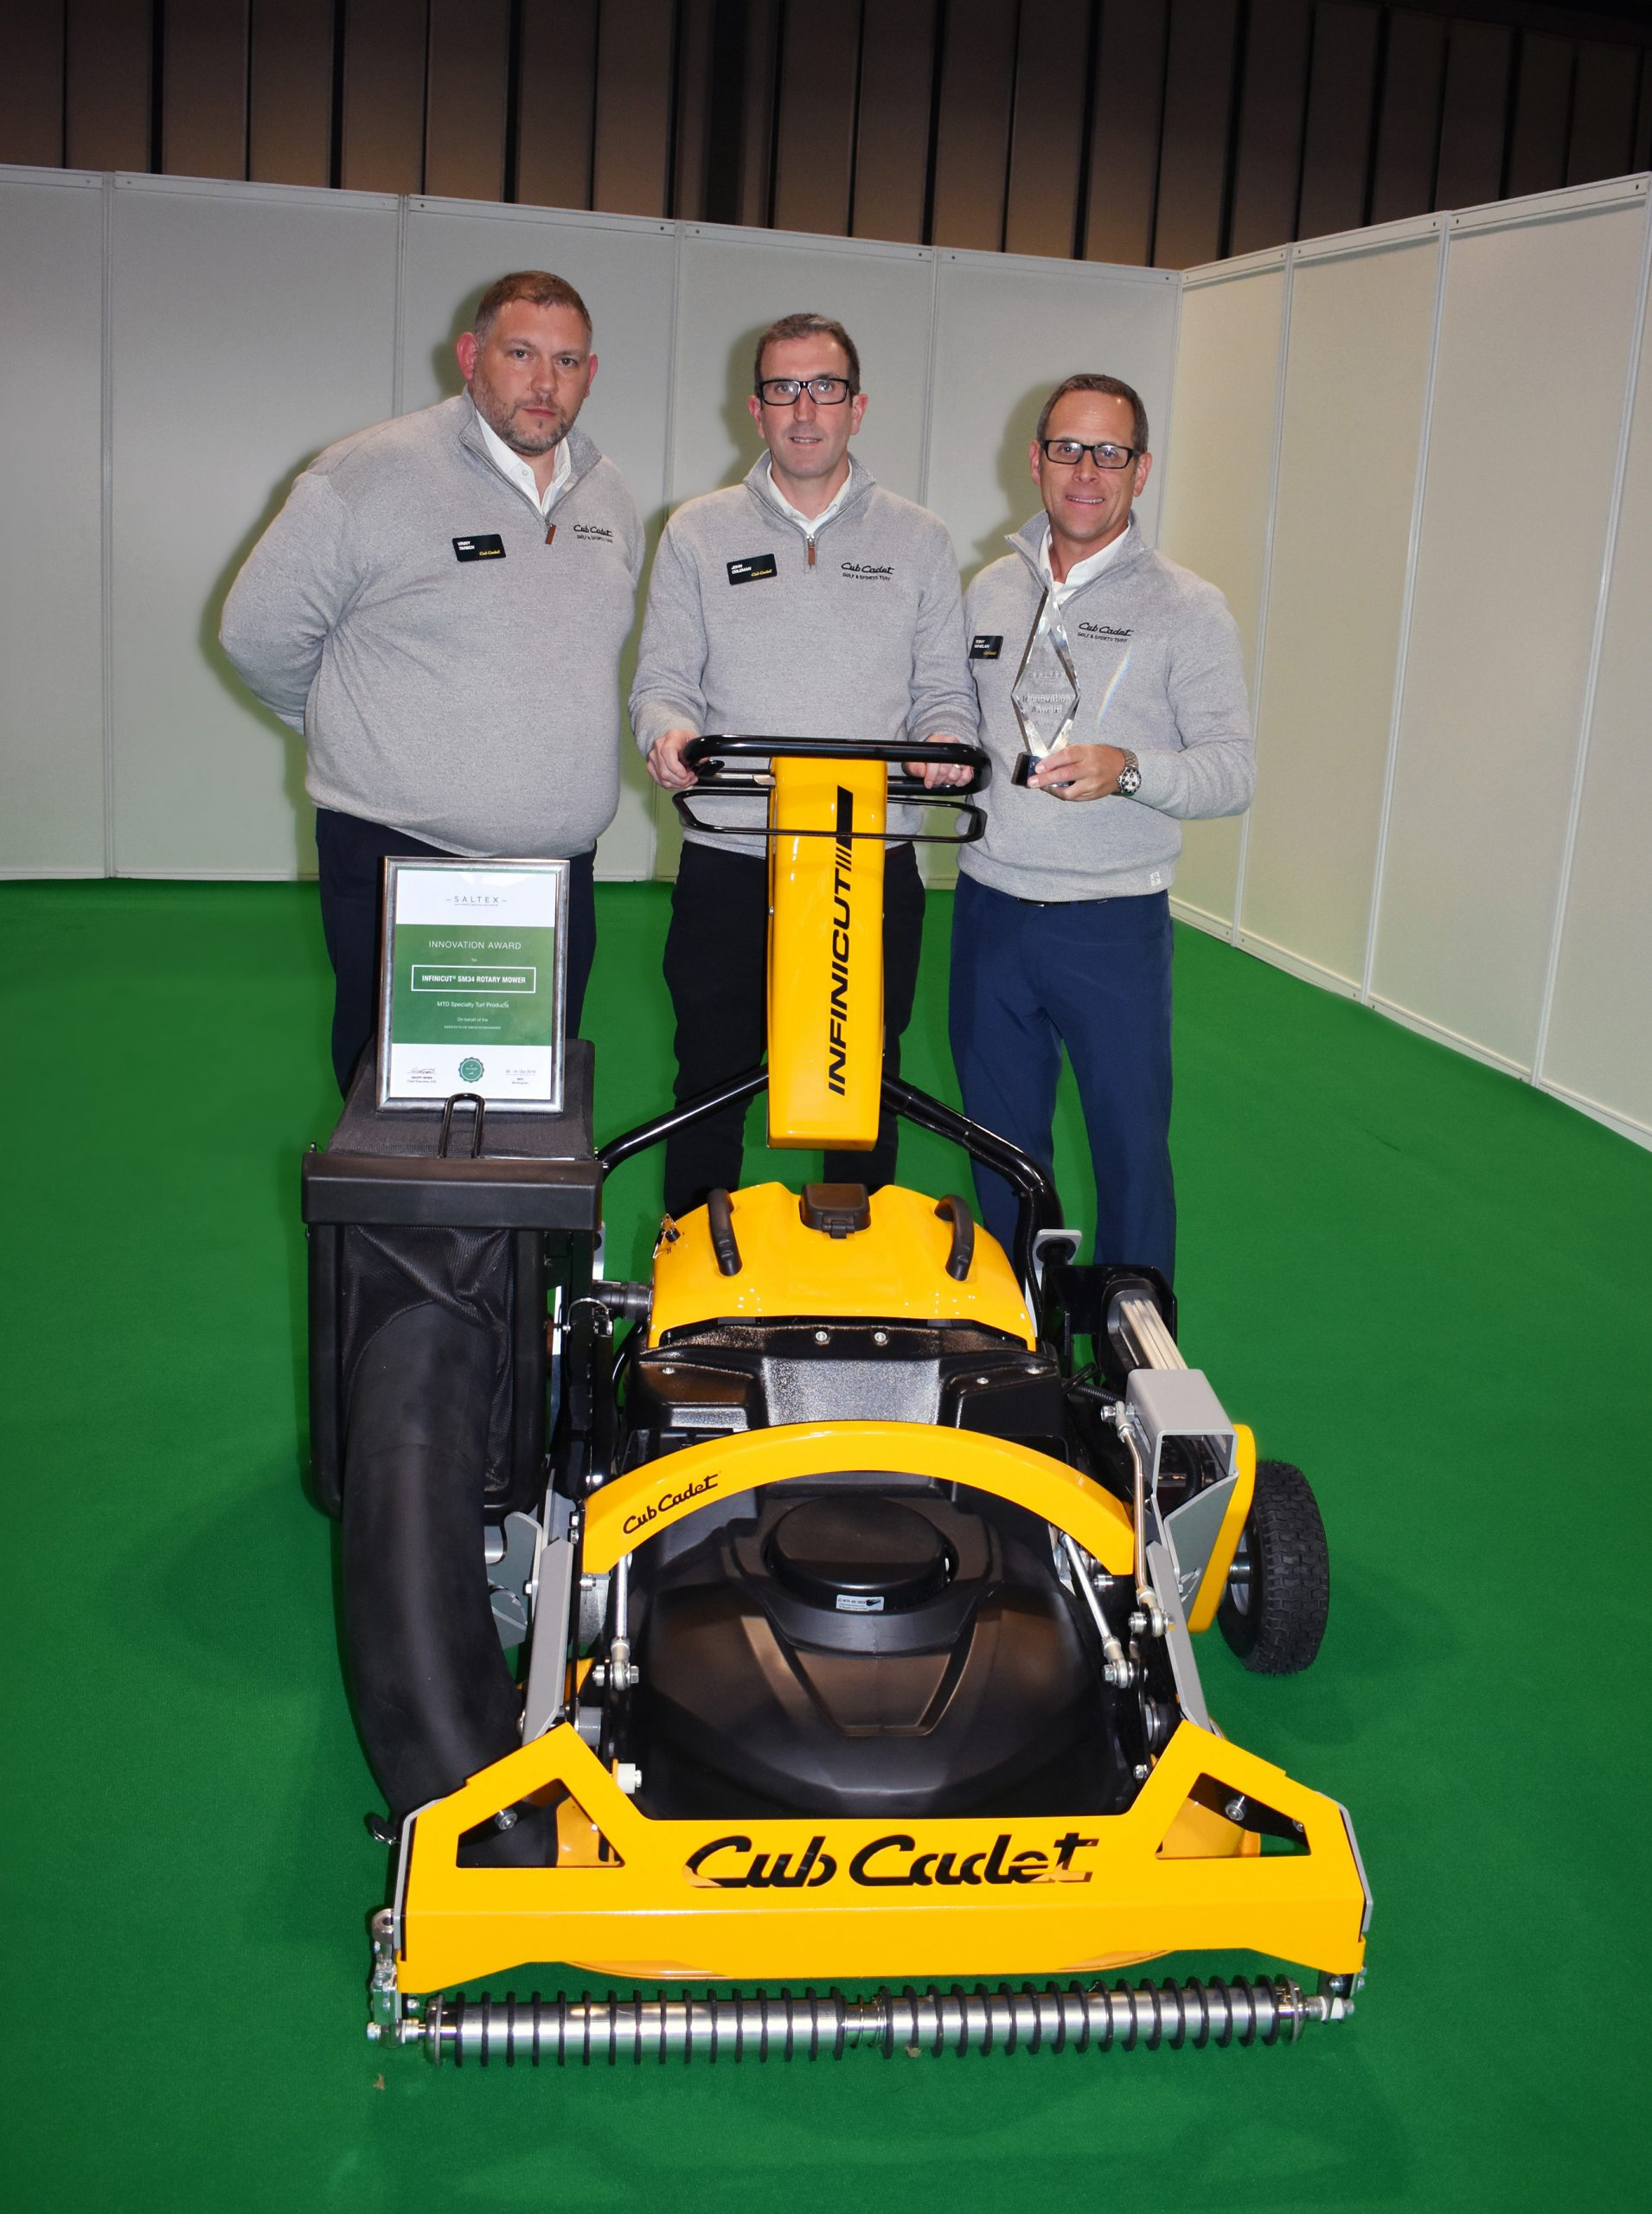 2019 SALTEX Innovation Award